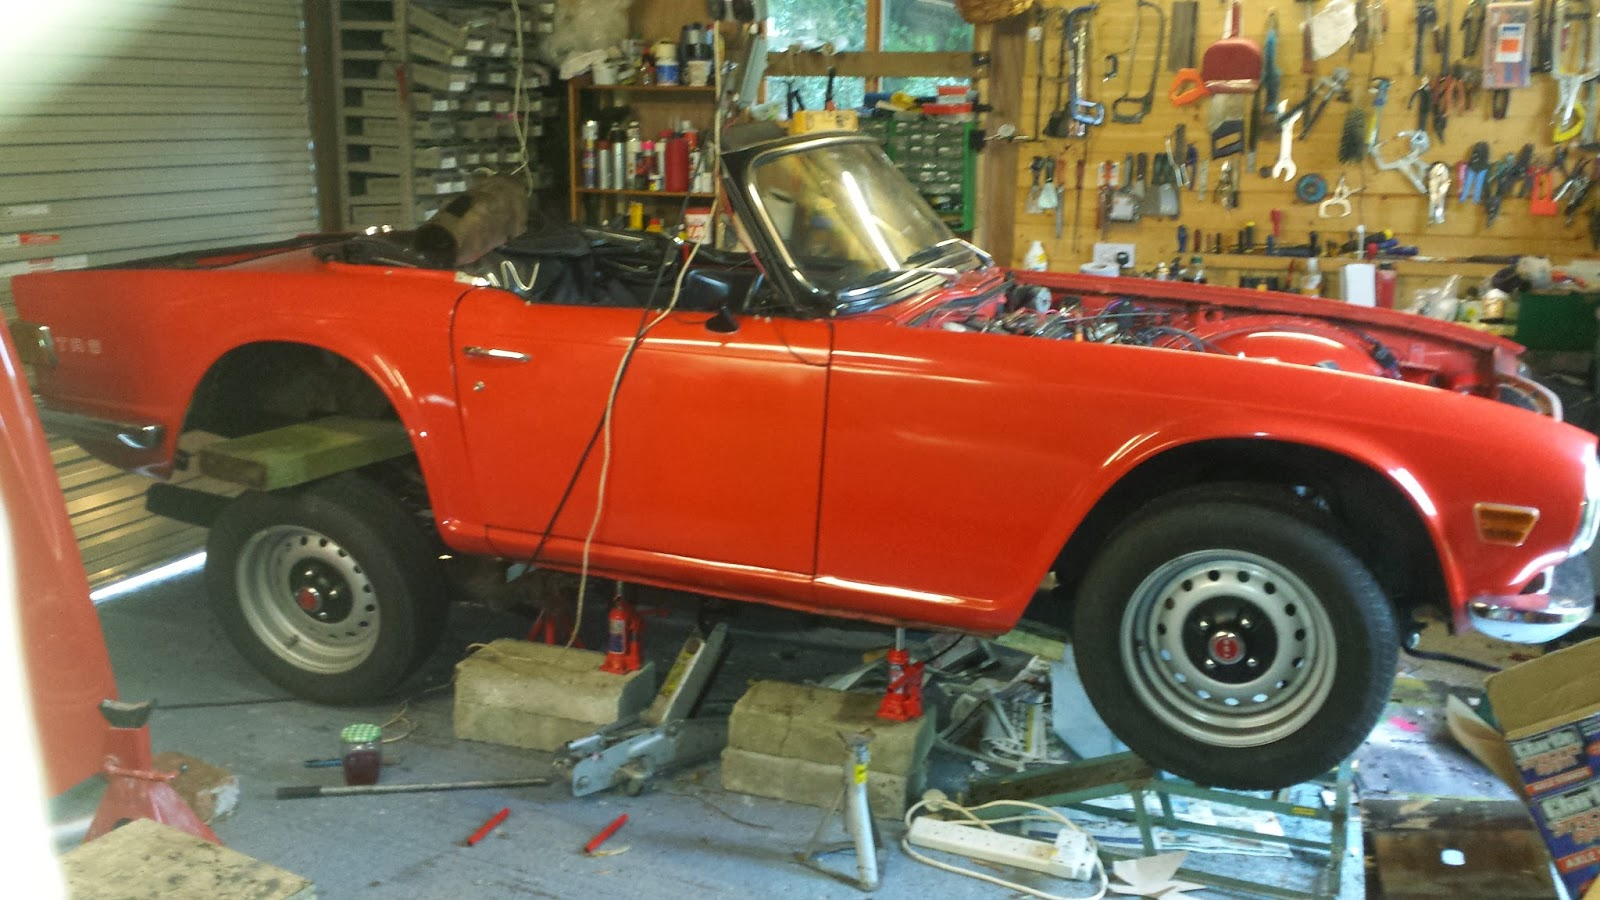 Tr6 Chassis Replacement And More